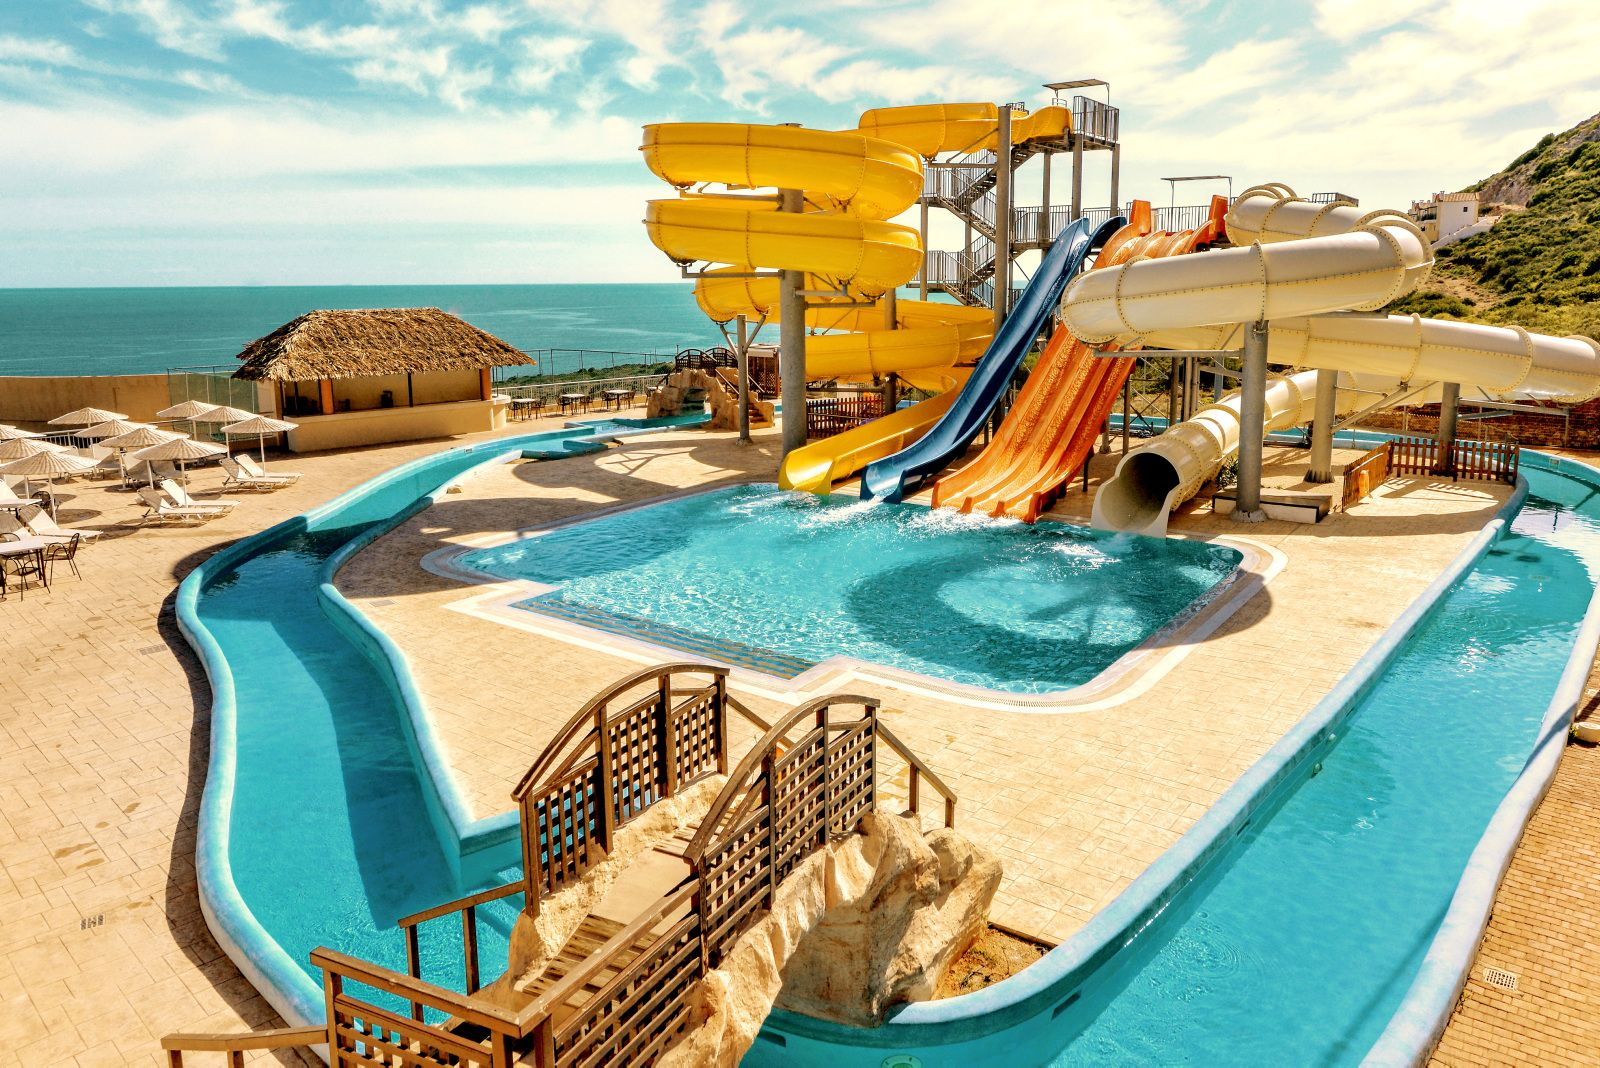 Prive Zwembad Kreta Smartline Village Resort Waterpark Griekenland Kreta